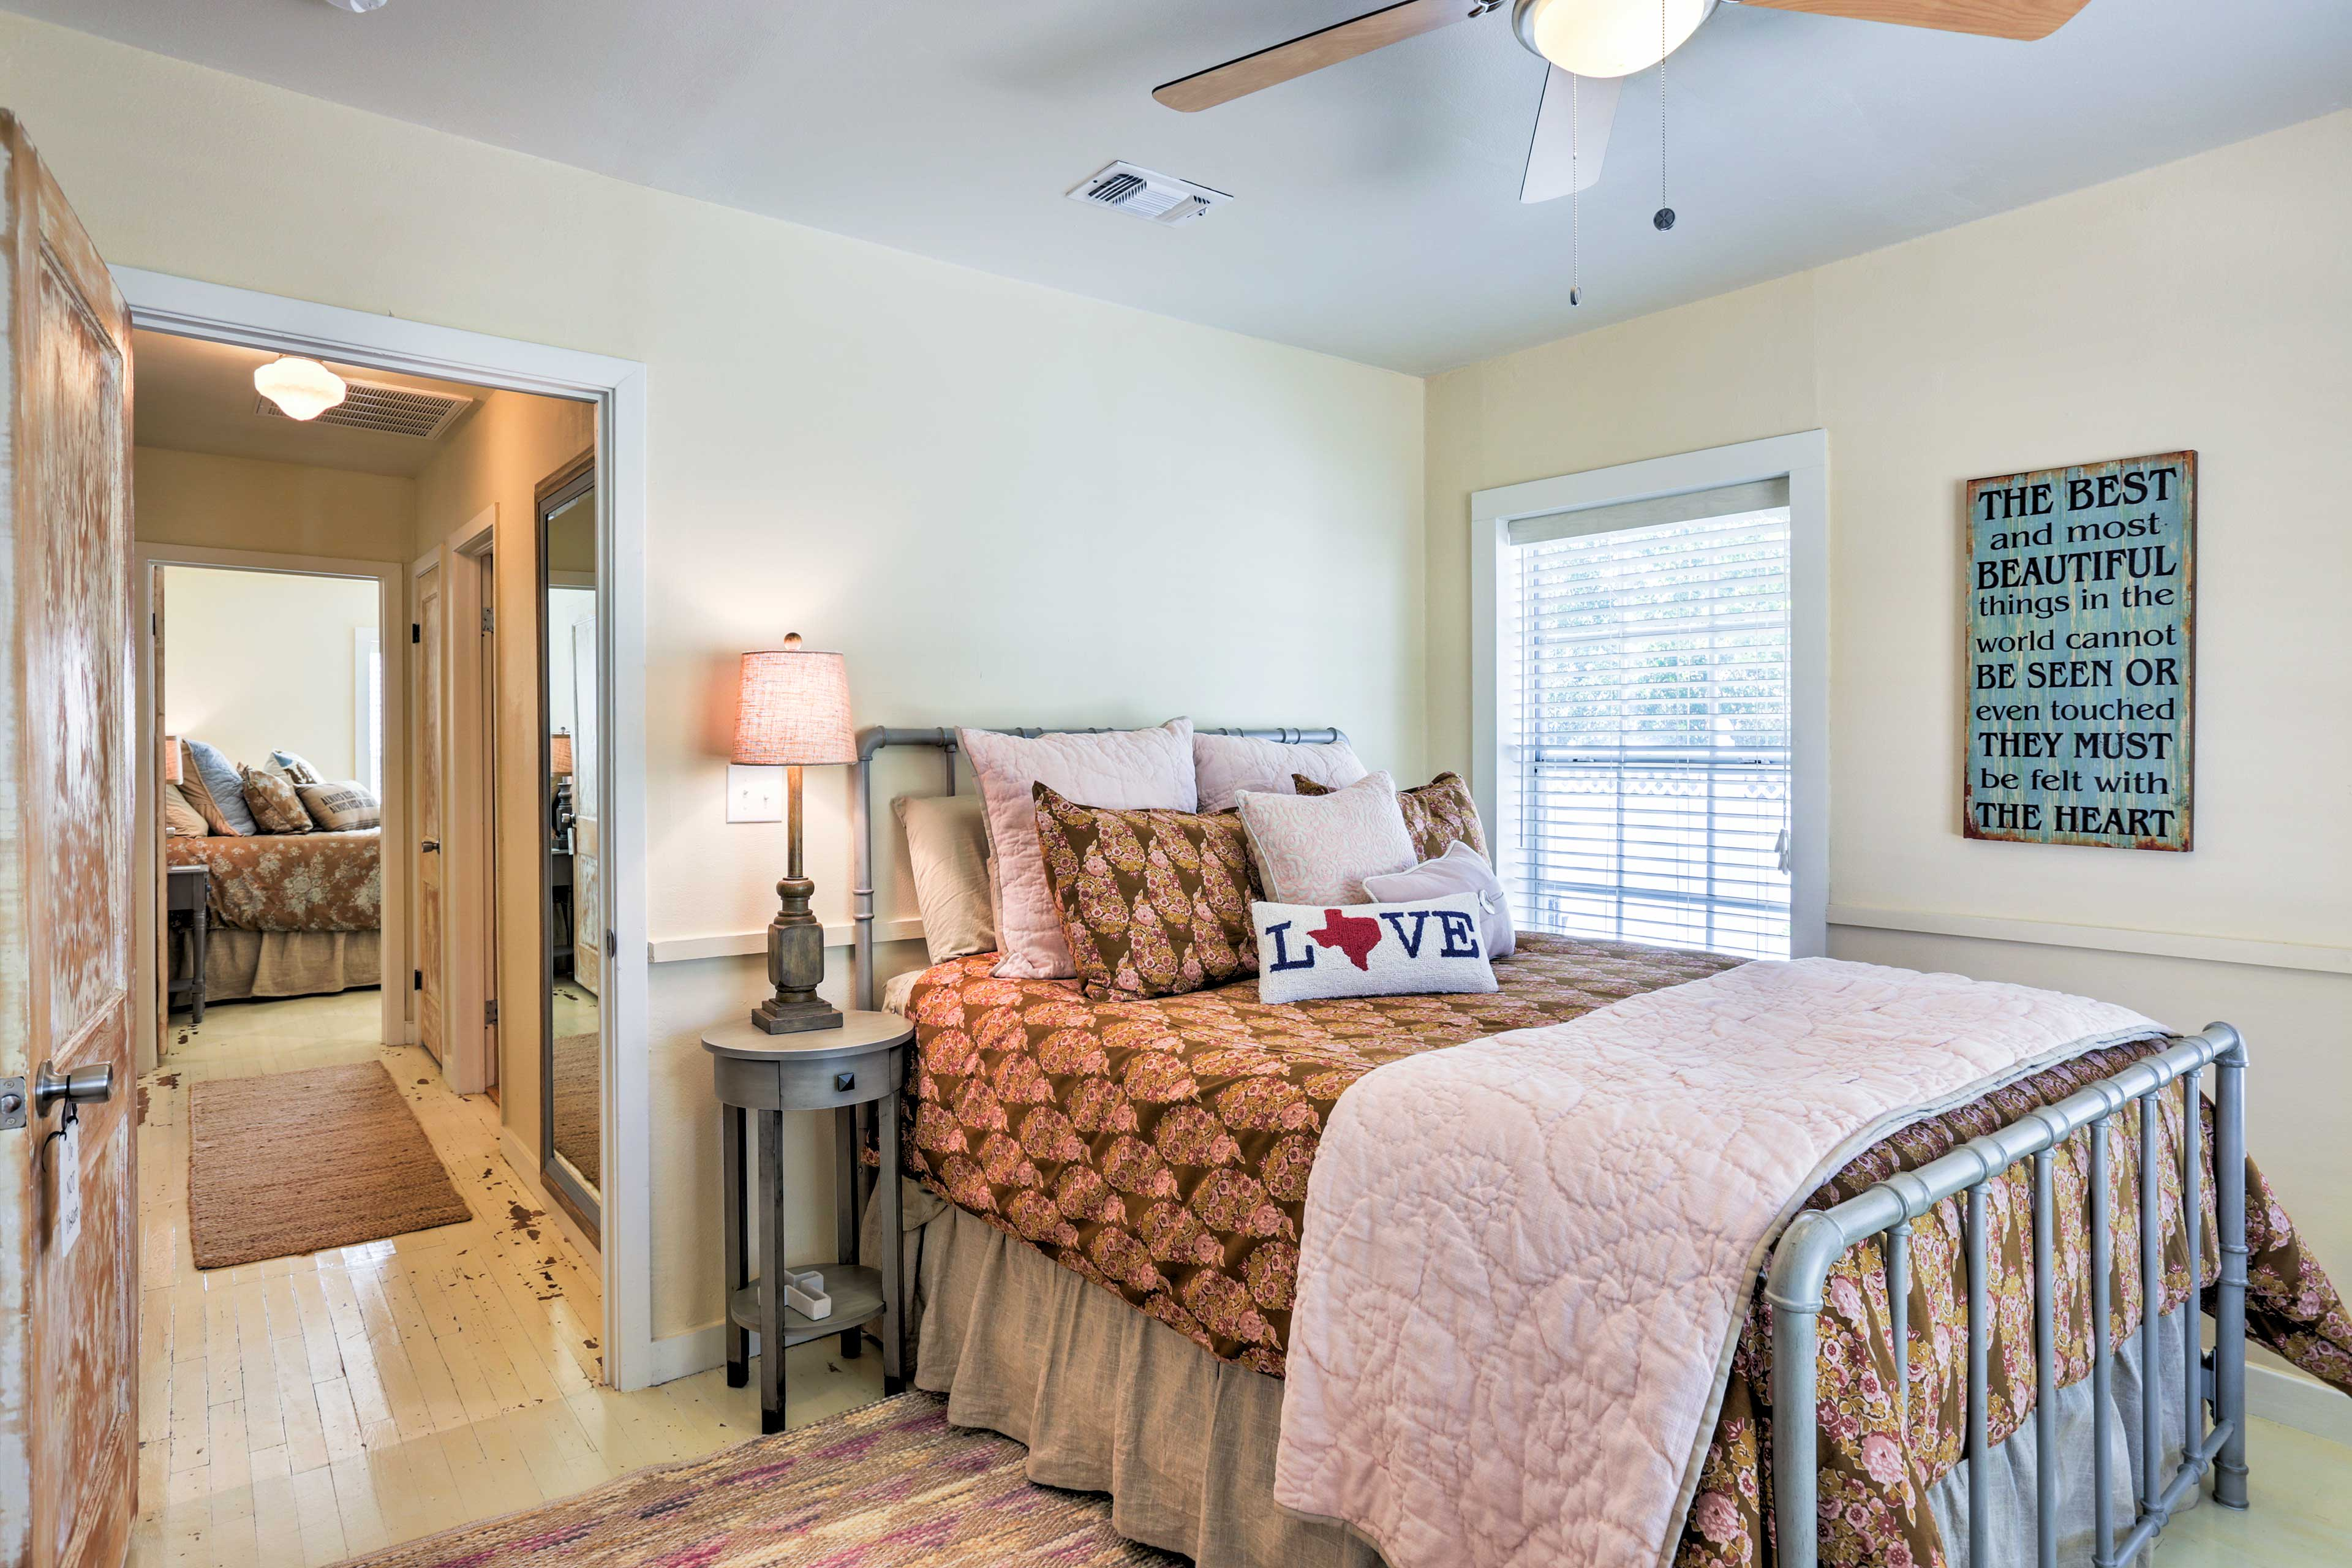 The third bedroom features a queen-sized bed.